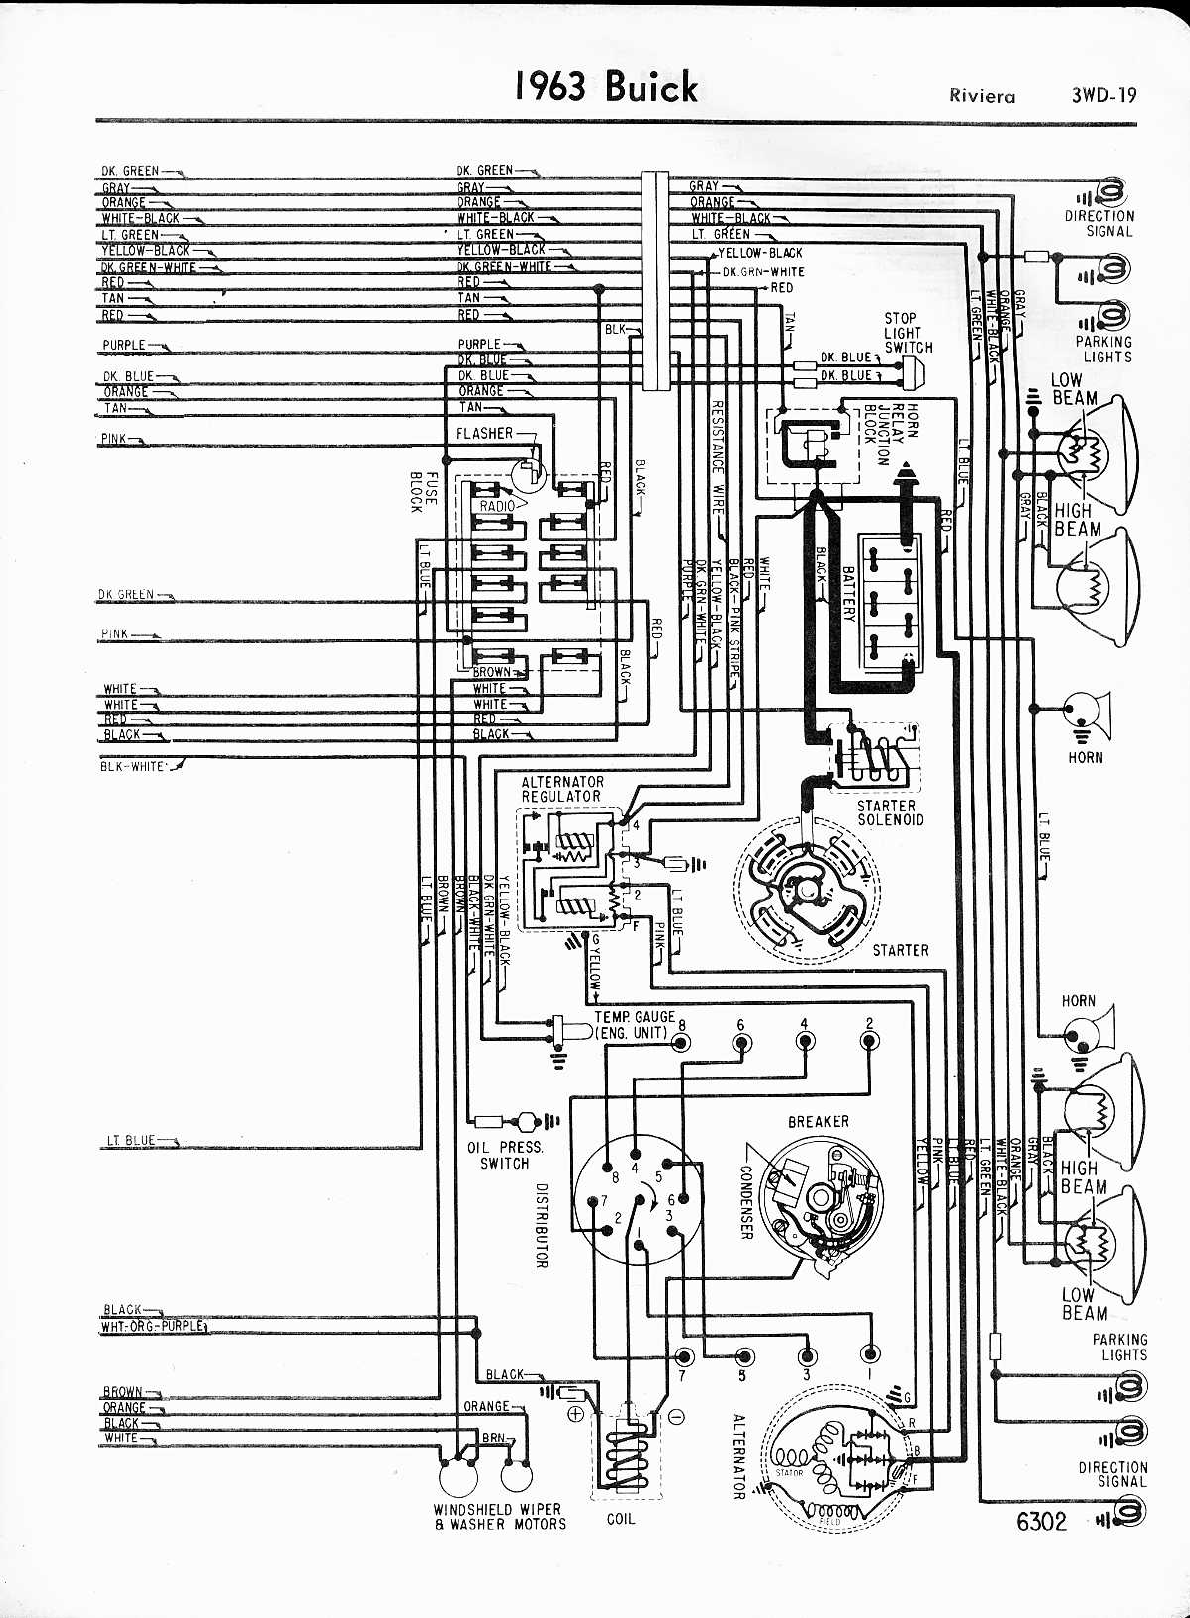 1963 Buick Riviera Wiring Diagram Not Lossing 1996 Lesabre Fuse Box 1965 Misc Documents Diagrams Pdf Rh Manuals Co Engine Signal Stat 900